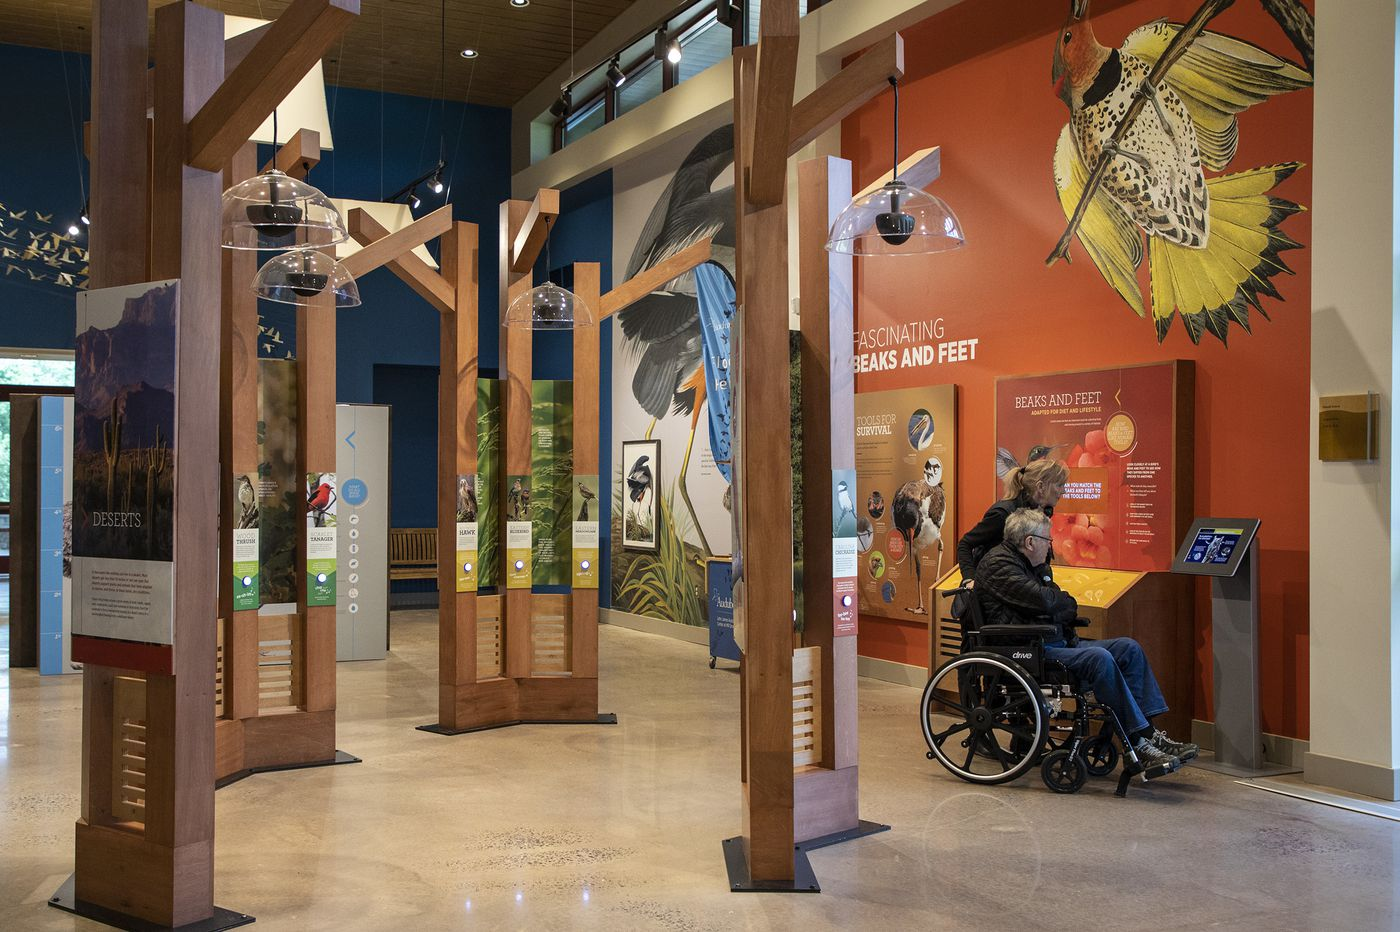 New Audubon Center resembles a bird in flight and aims to be a bigger regional attraction